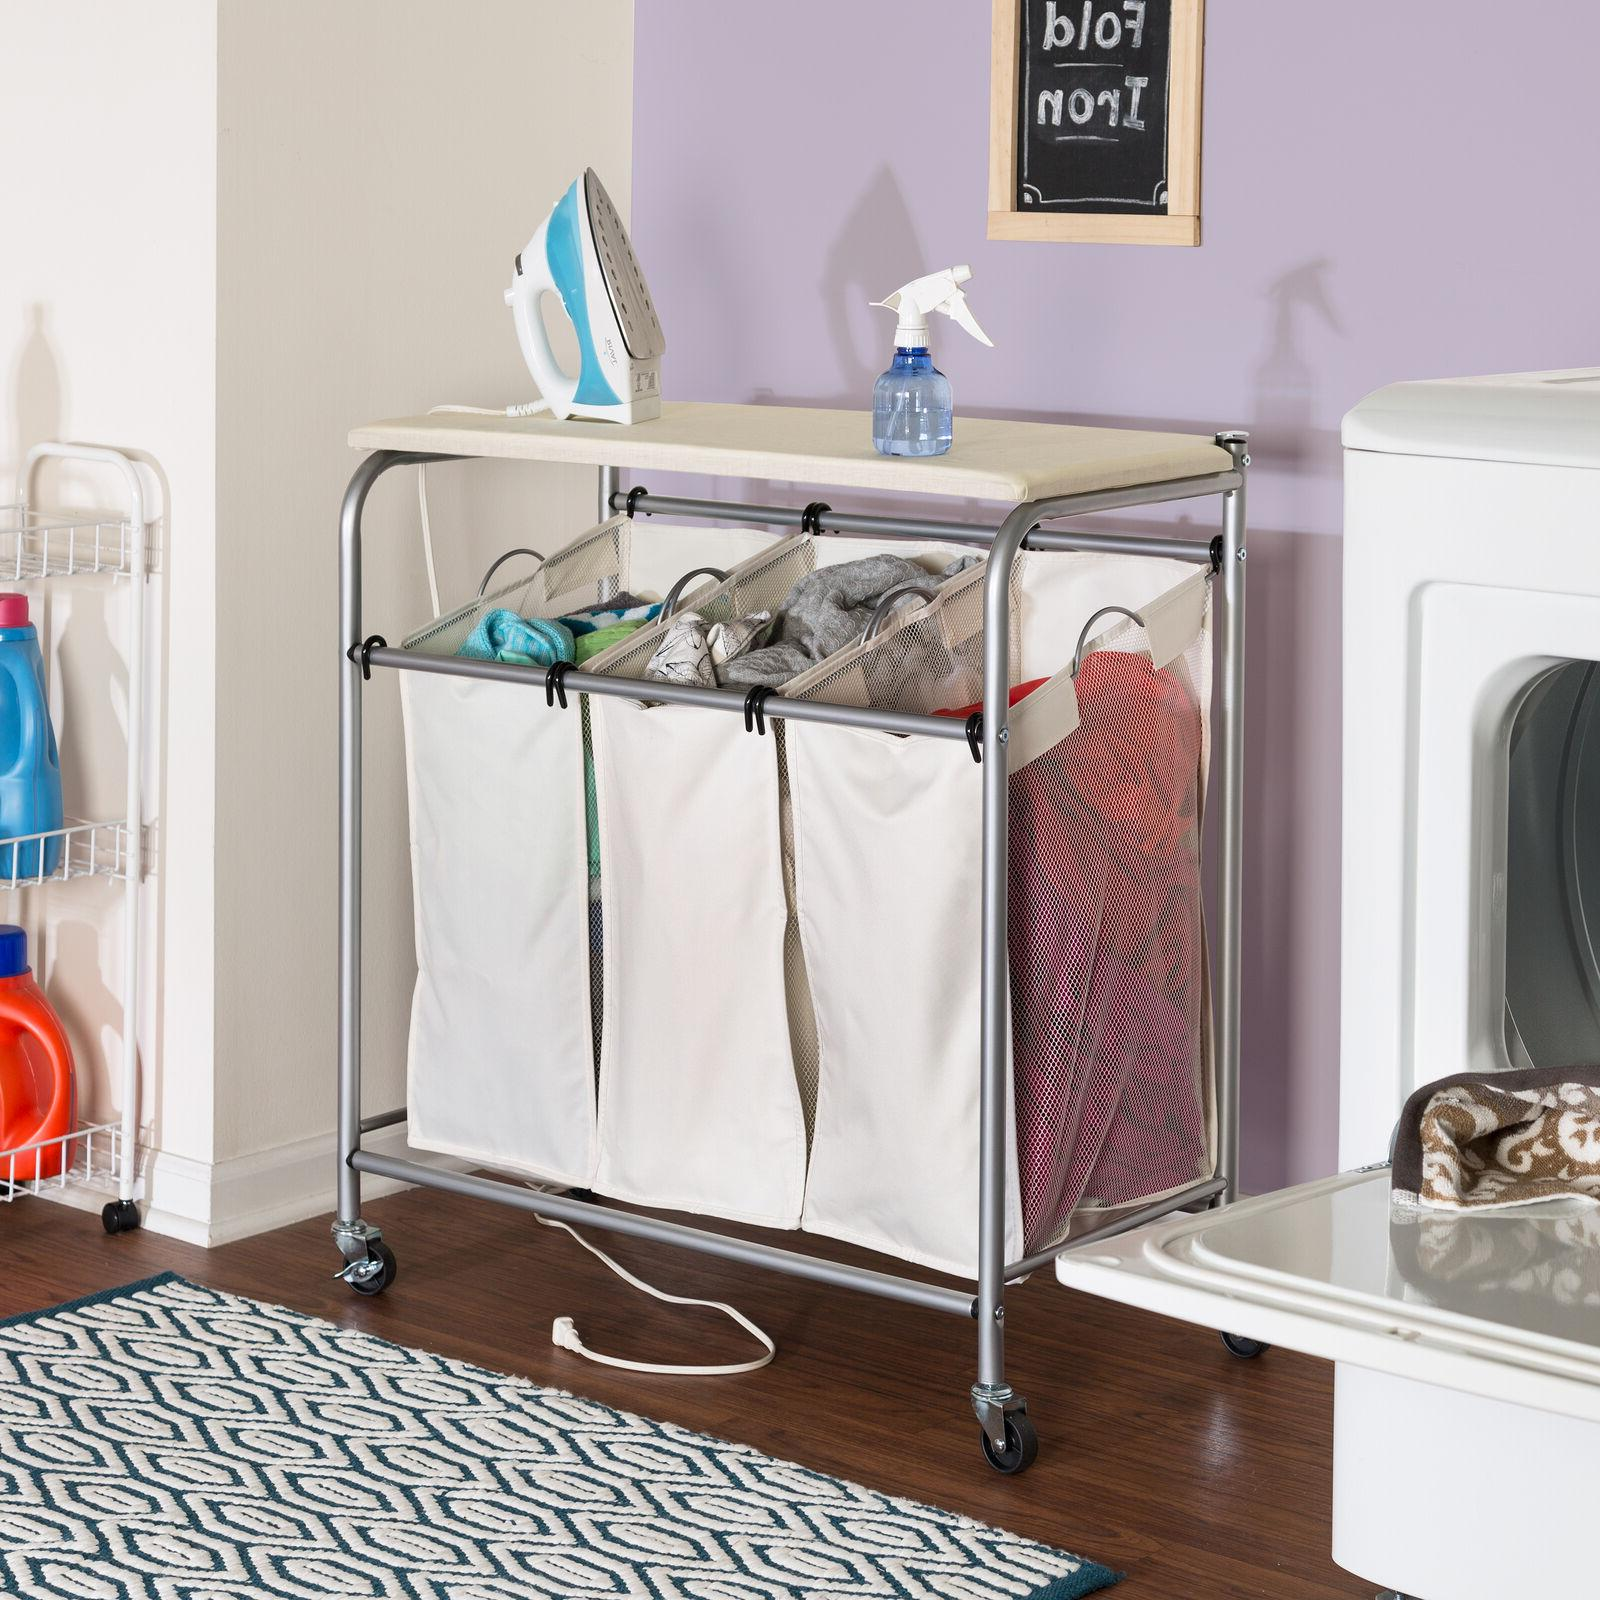 Home Ironing Board Bin Removable Bag